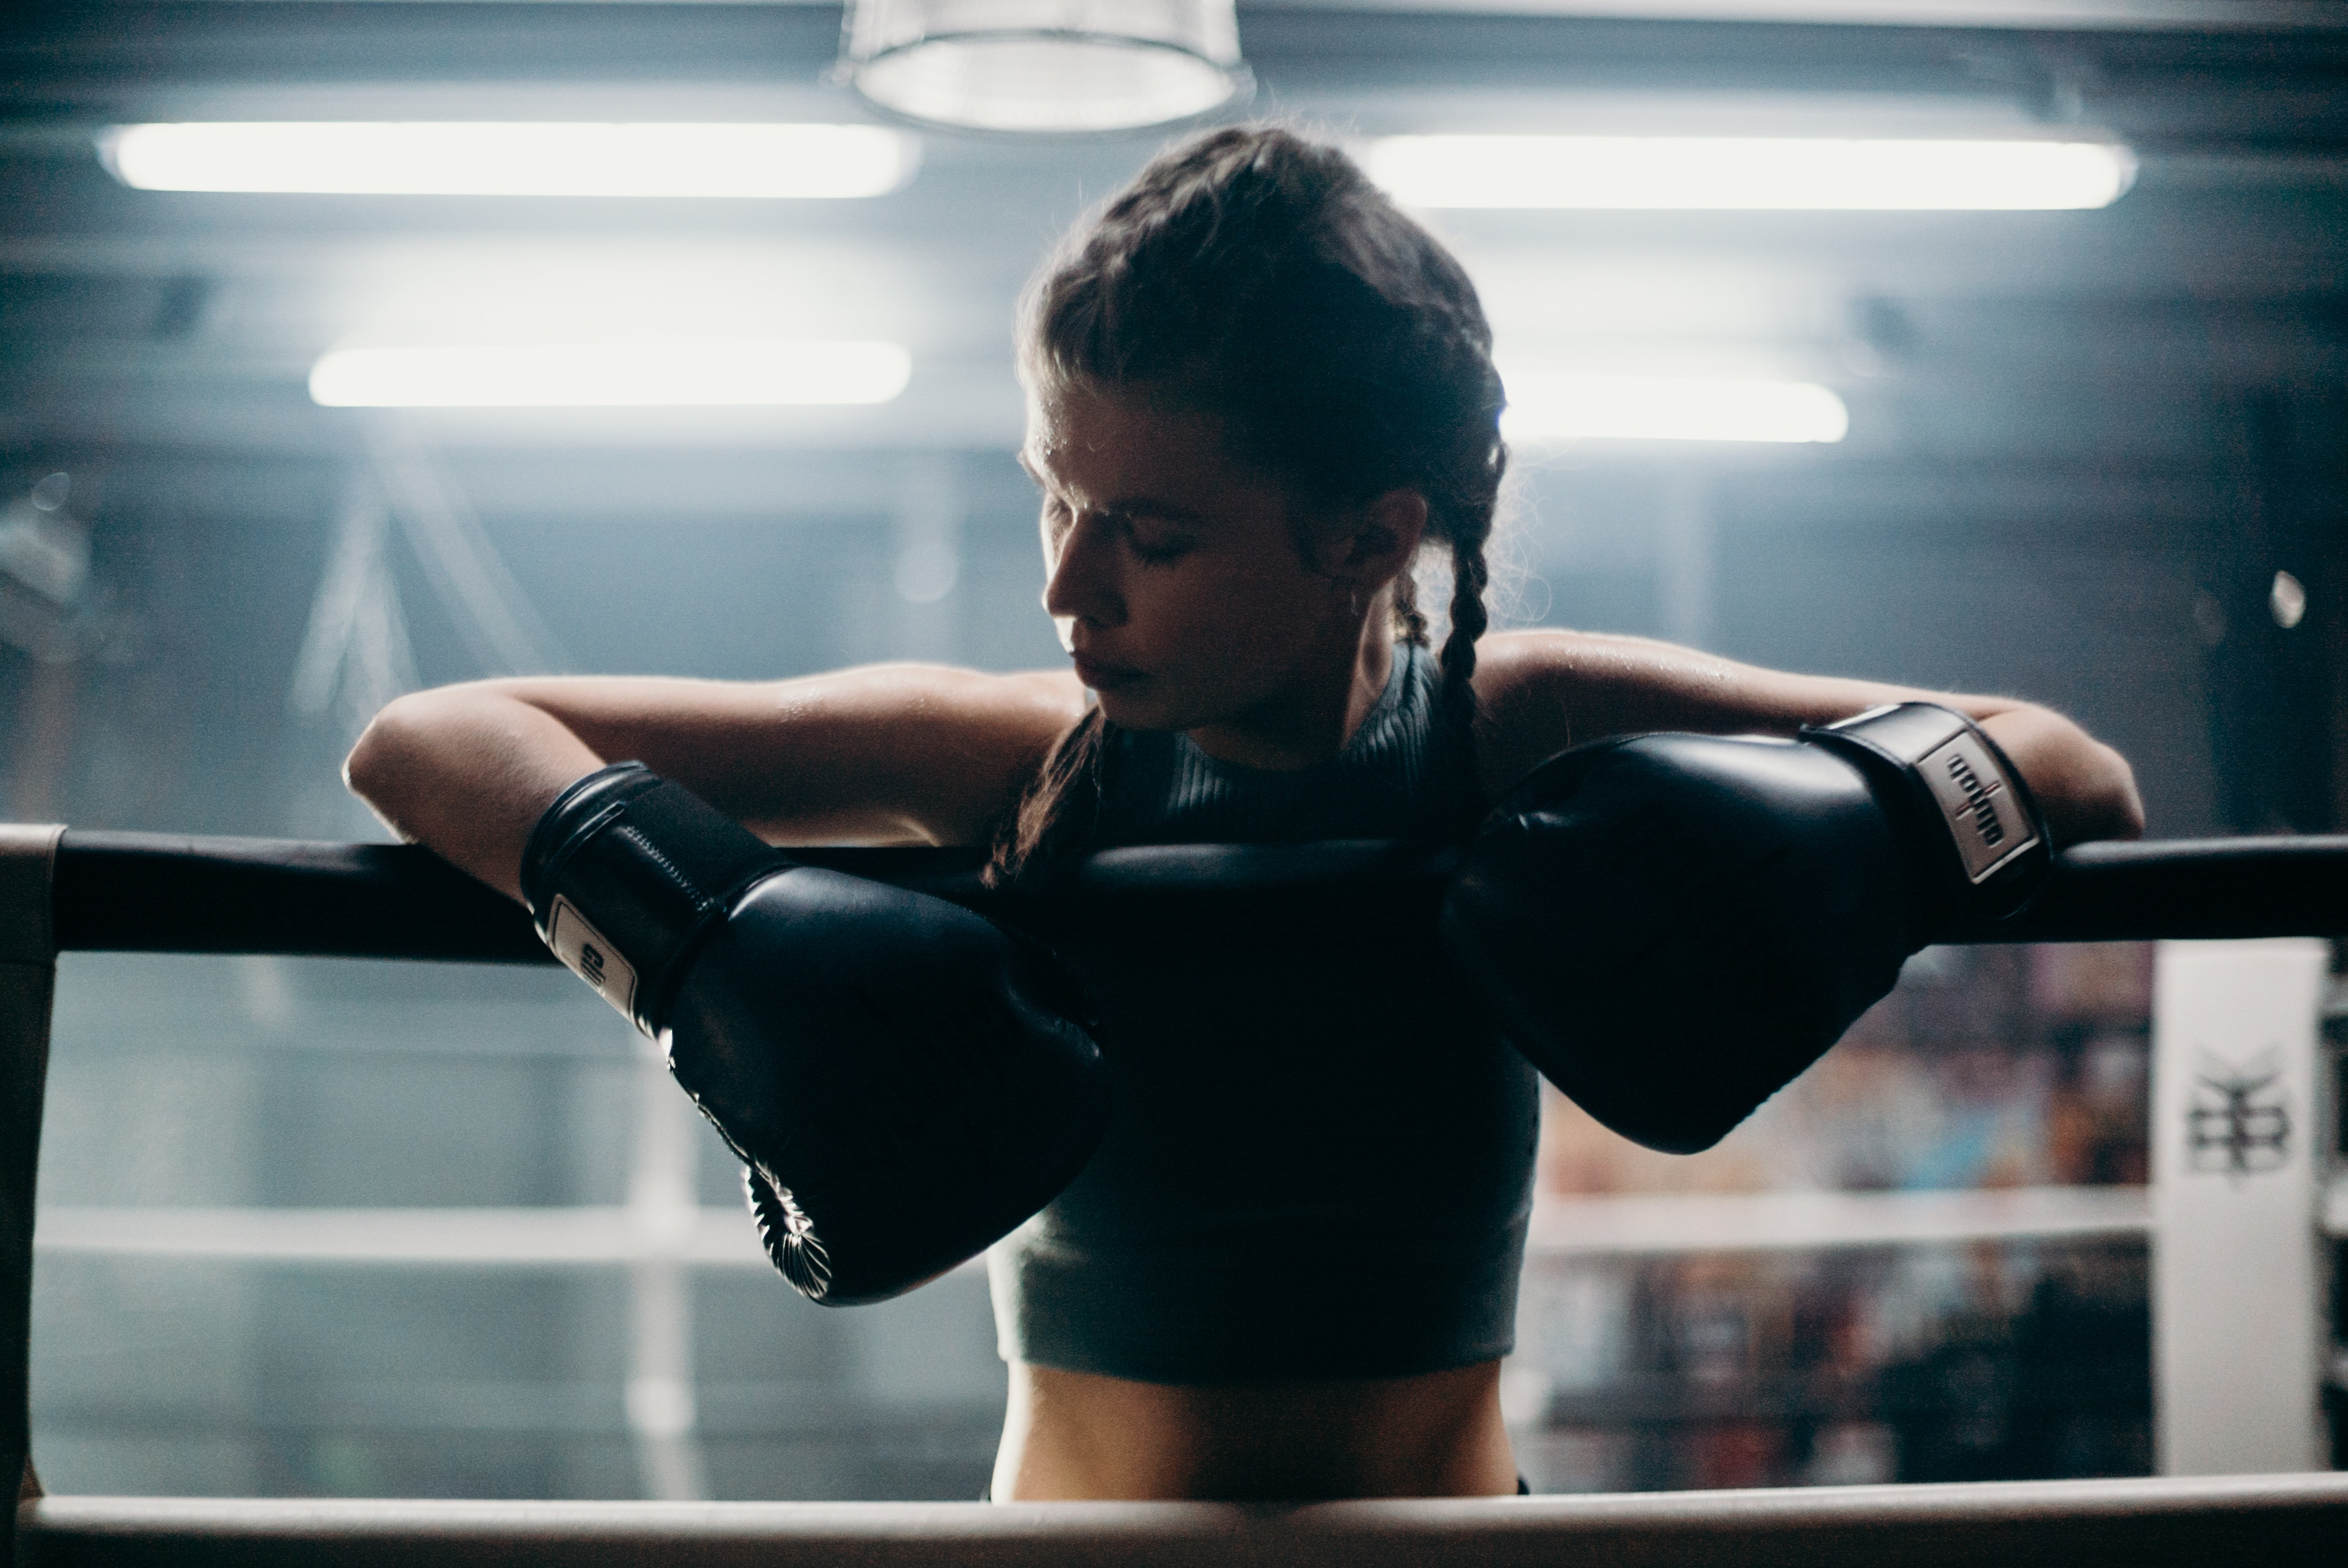 An athlete staying mentally fit with boxing